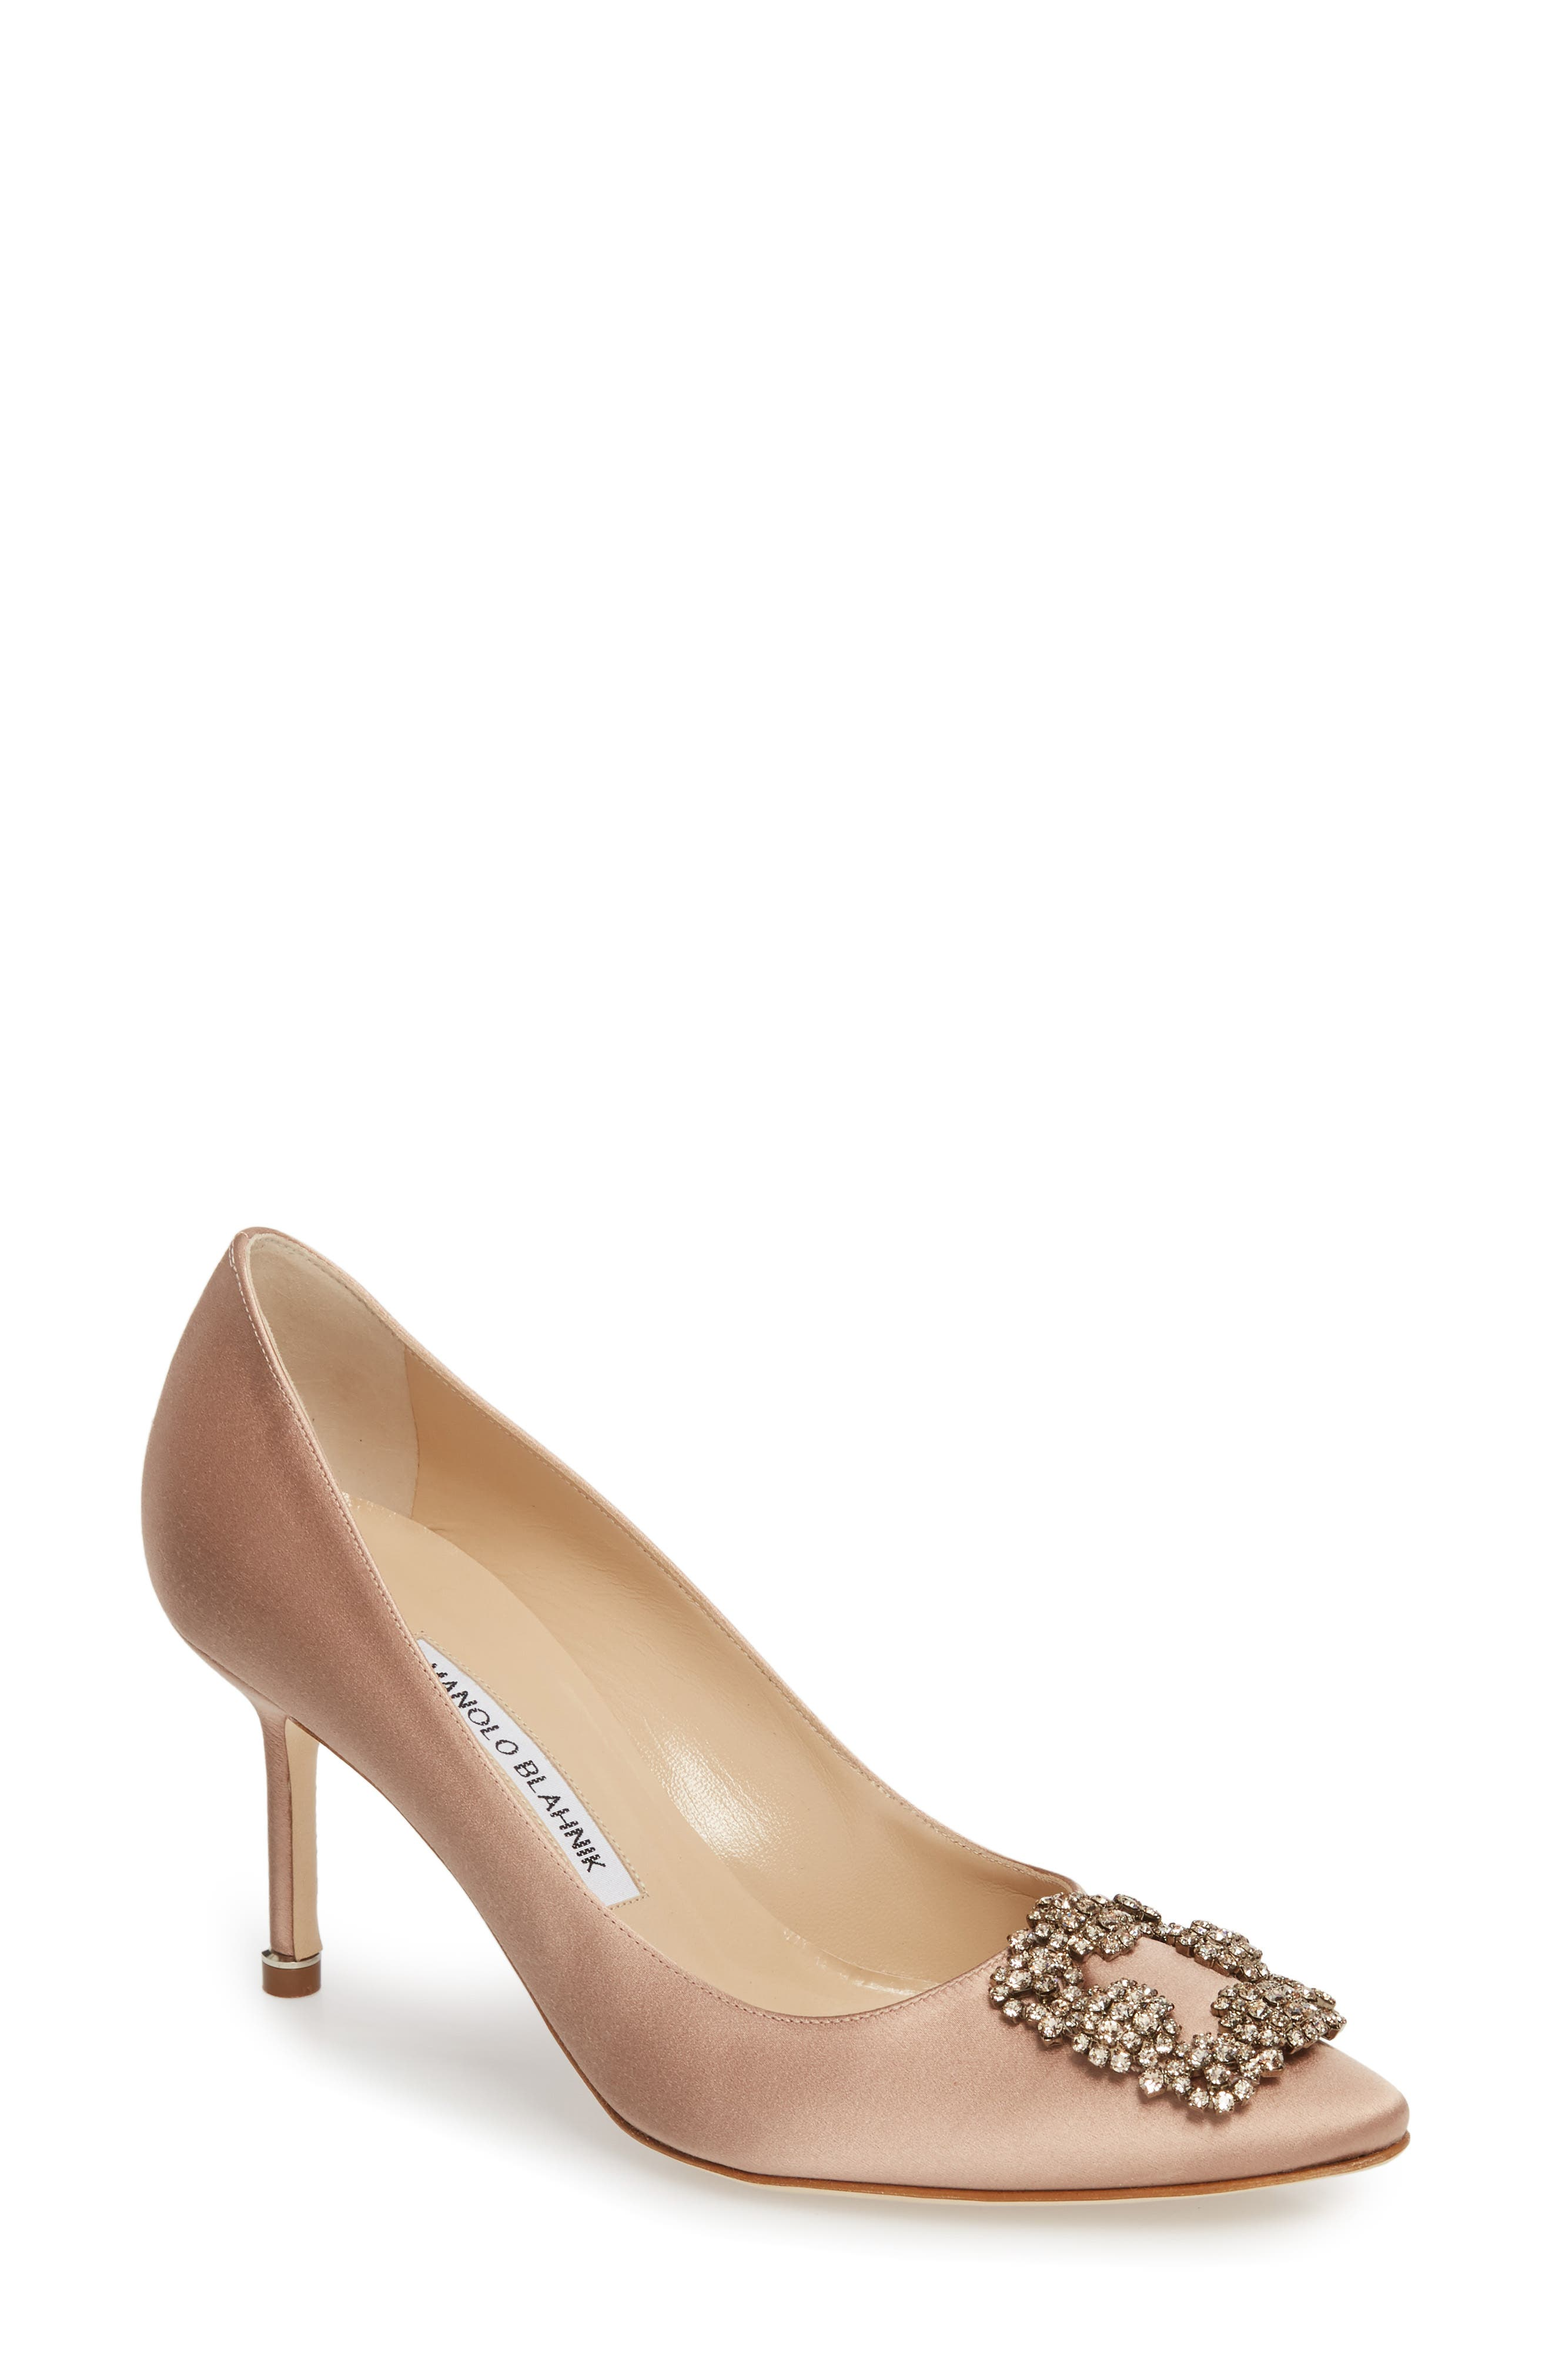 'Hangisi' Pointy Toe Pump,                         Main,                         color, Flesh Satin